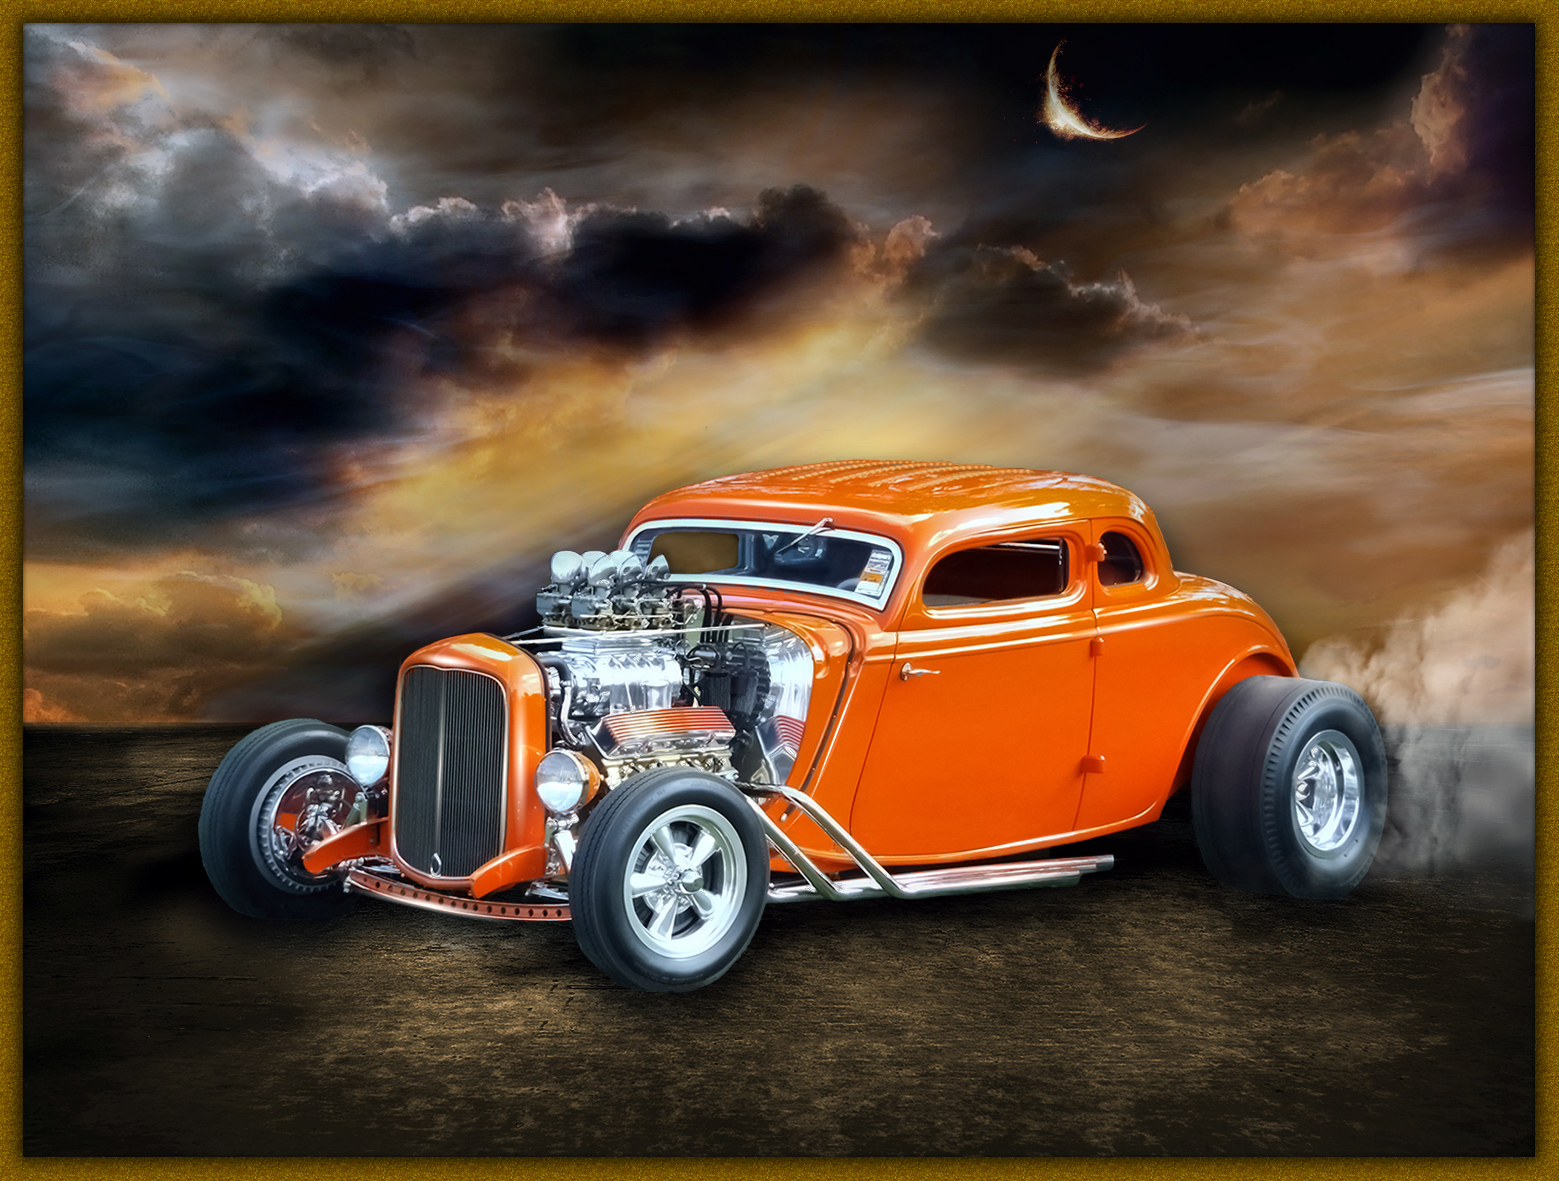 Old School Hot Rod - Other Cool Photos - Topaz Discussion Forum